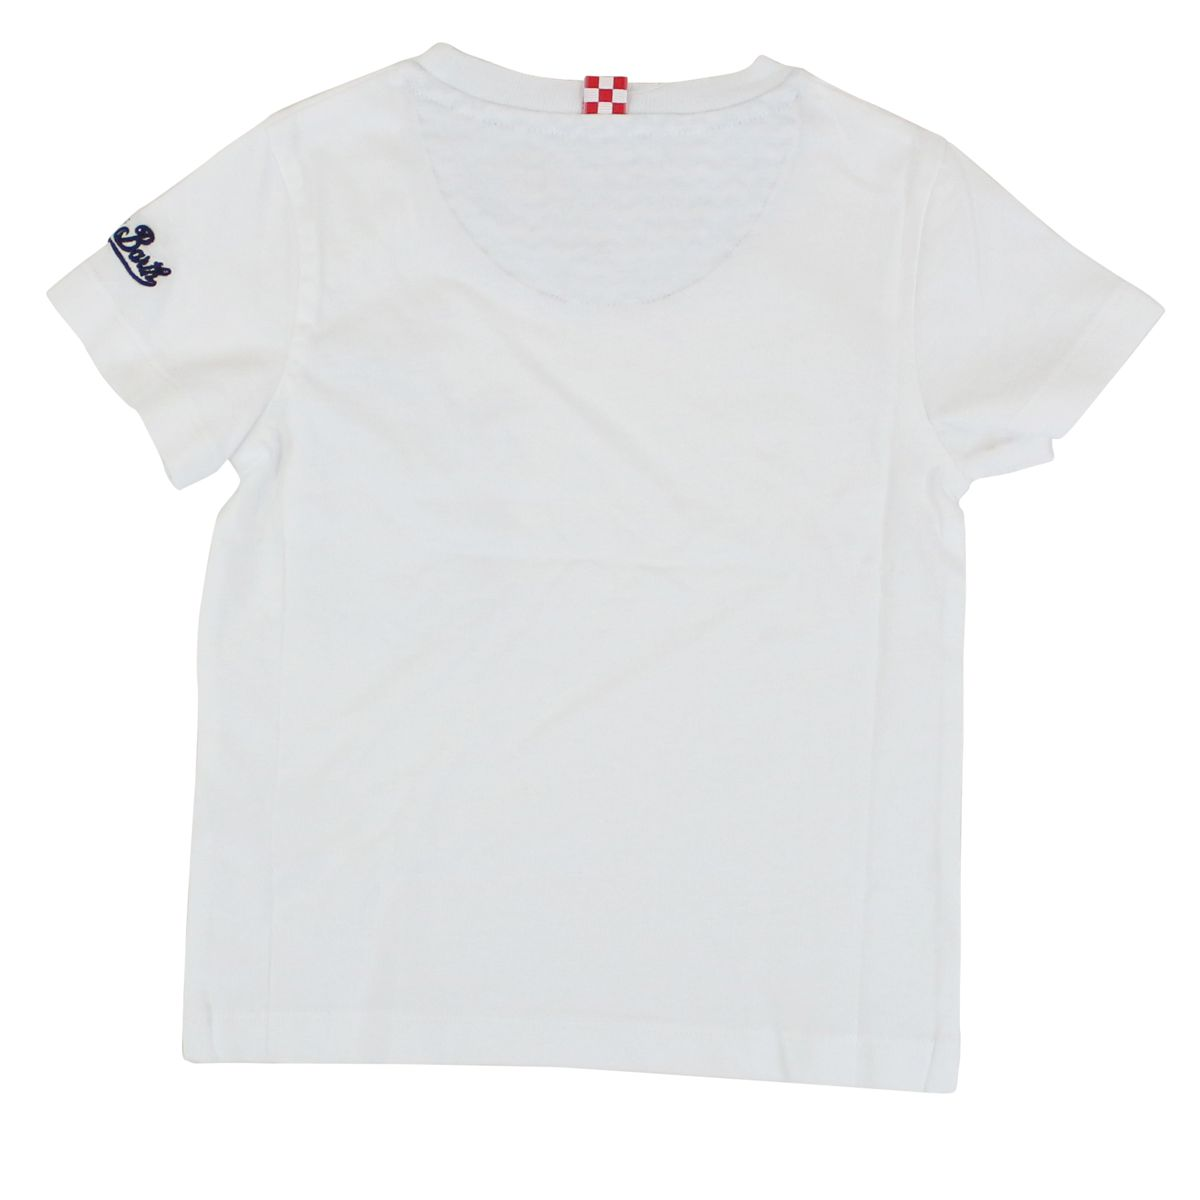 Wind Shark cotton t-shirt White MC2 Saint Barth